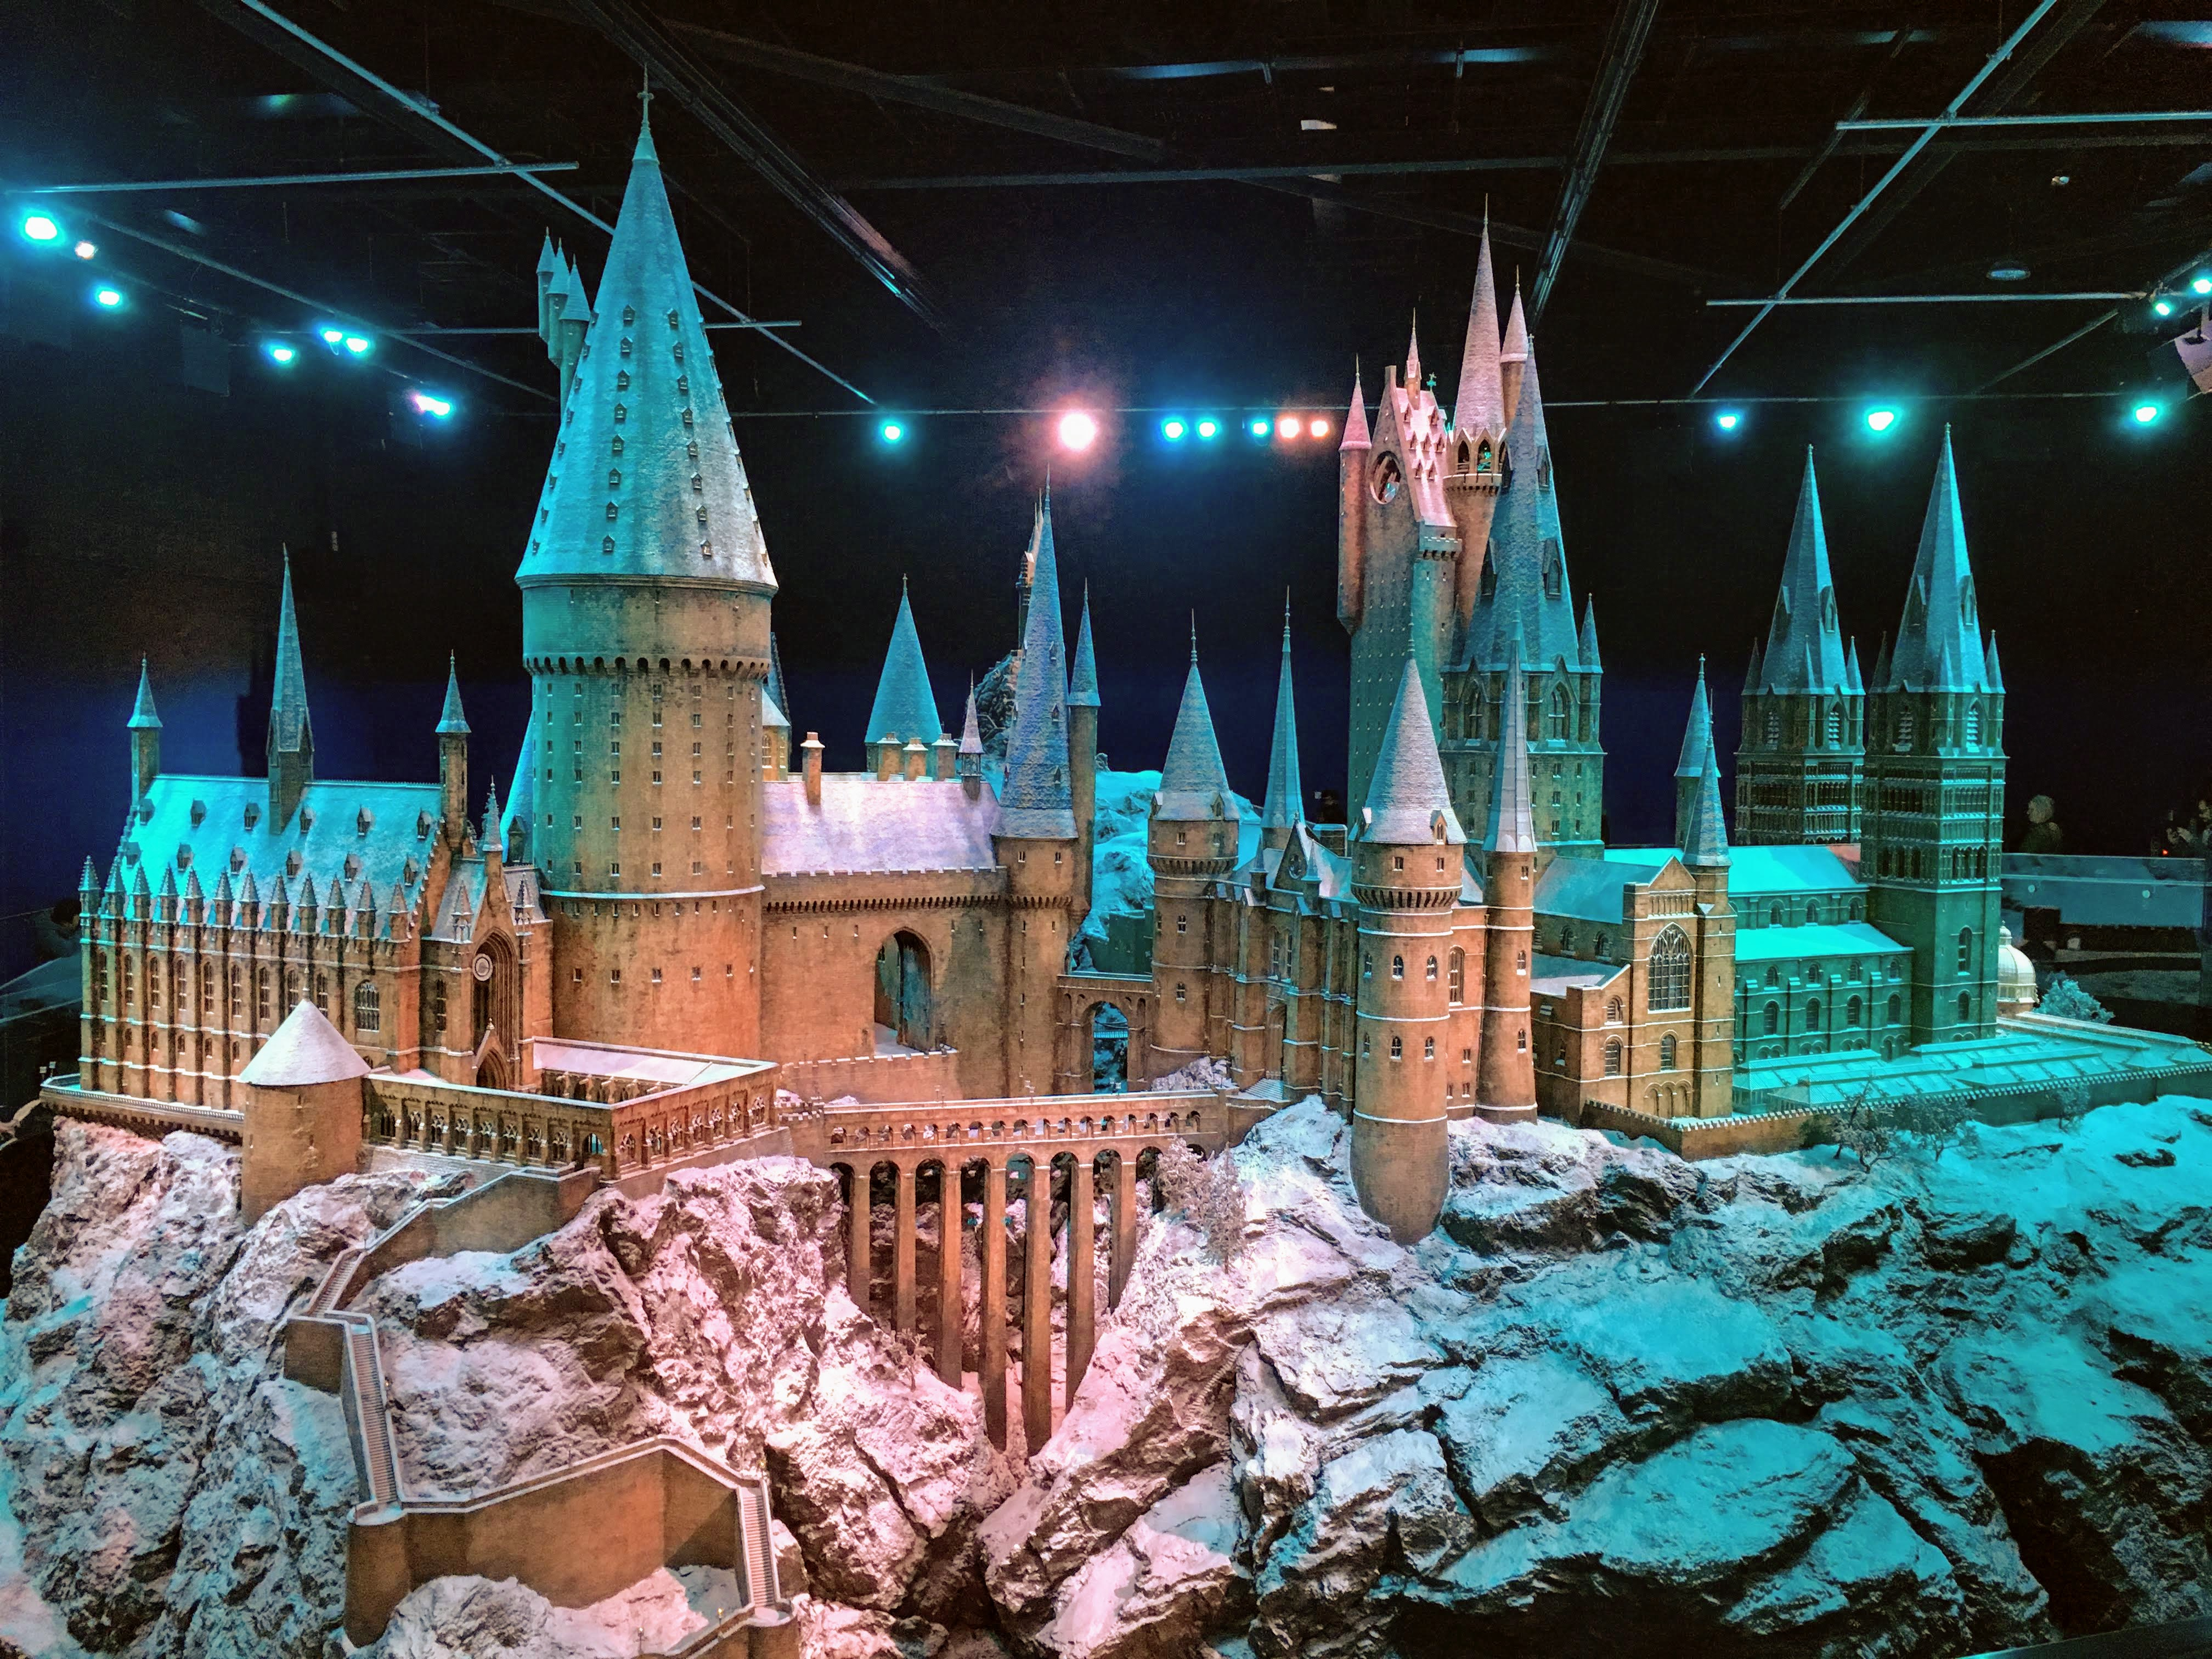 Hogwarts model Harry Potter Studios tour London warner bros